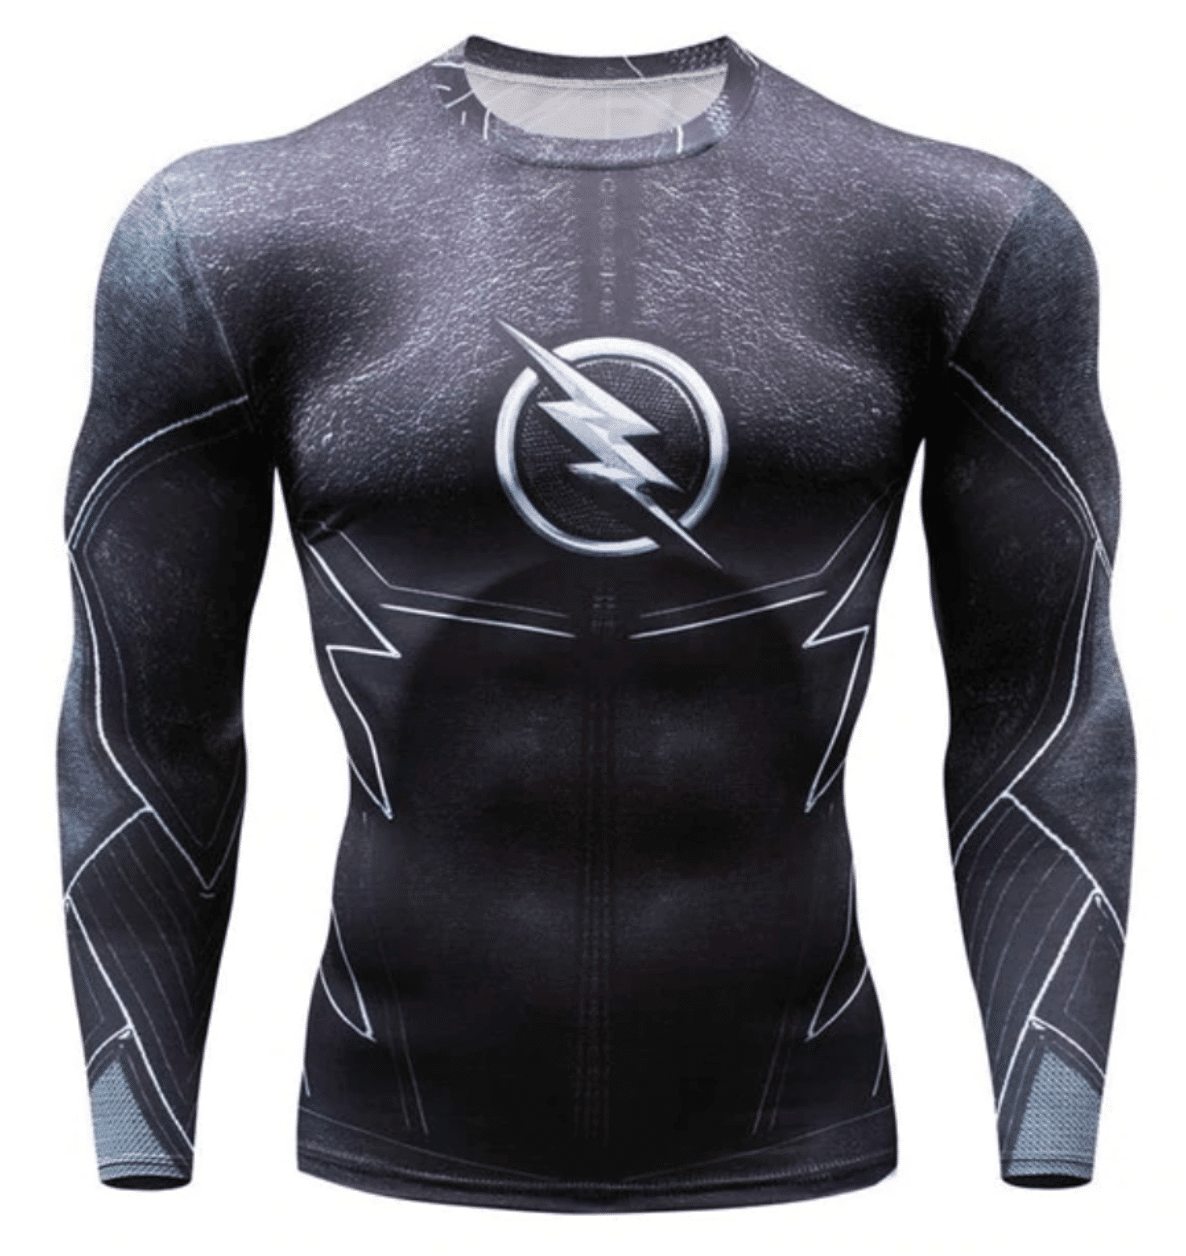 BJJ Phantom Flash Rashguard Customer Reviews